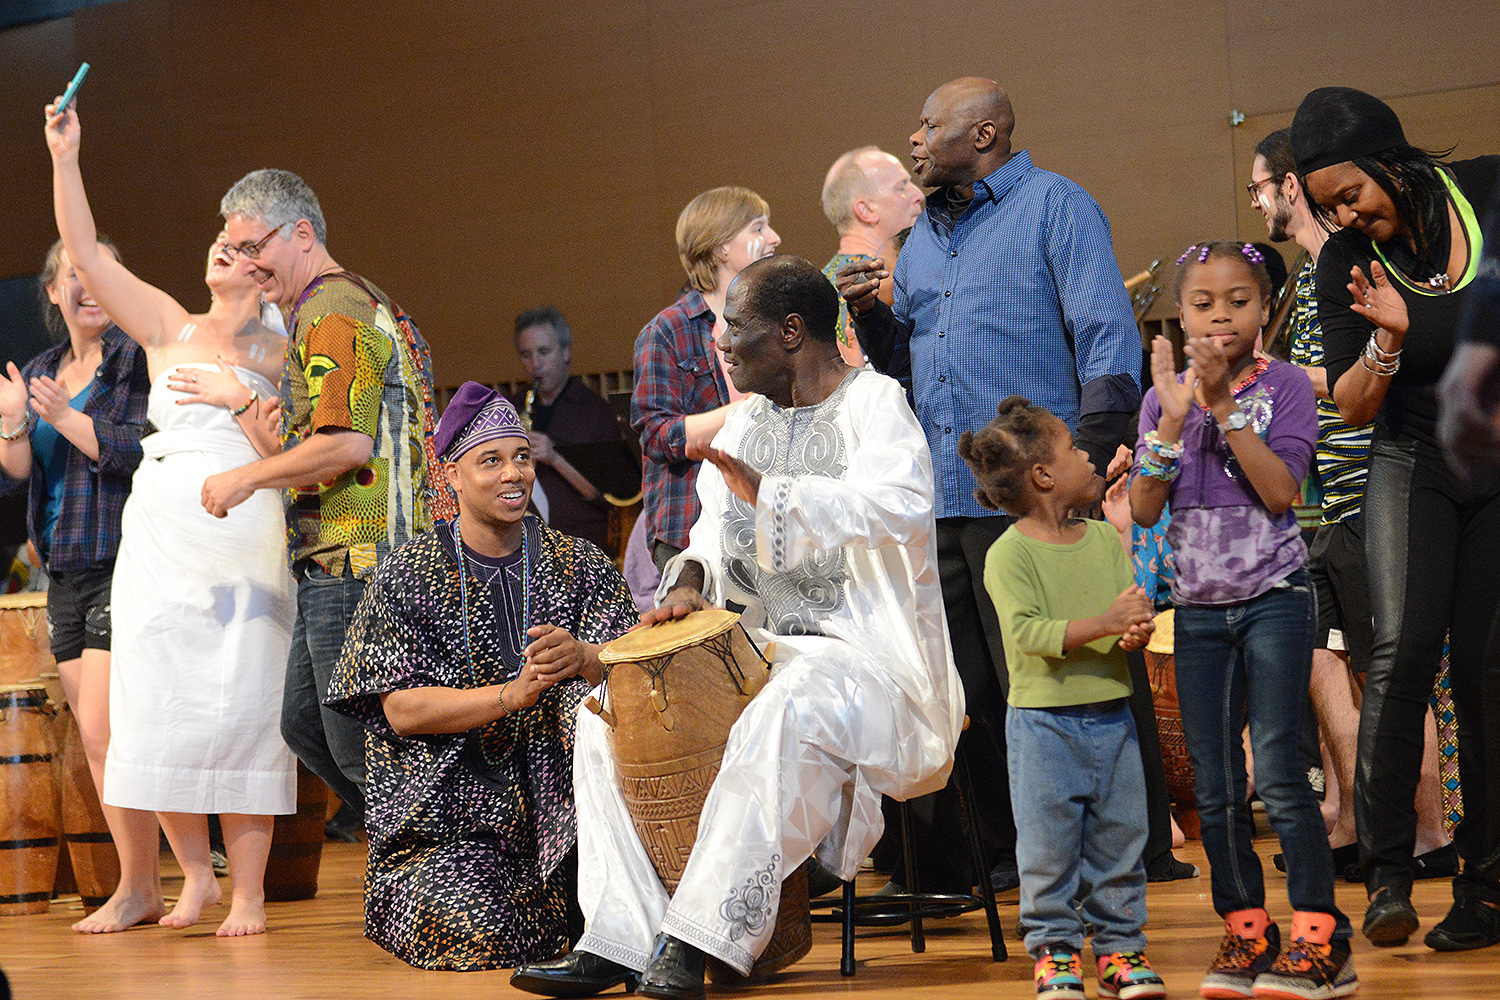 On May 7, Master drummer Abraham Adzenyah, adjunct professor of music, emeritus, returned to campus for a ceremony, farewell concerts, and reunion featuring past and present students. Adzenyah taught West African music, dance and culture at Wesleyan for 46 years and retired in May.